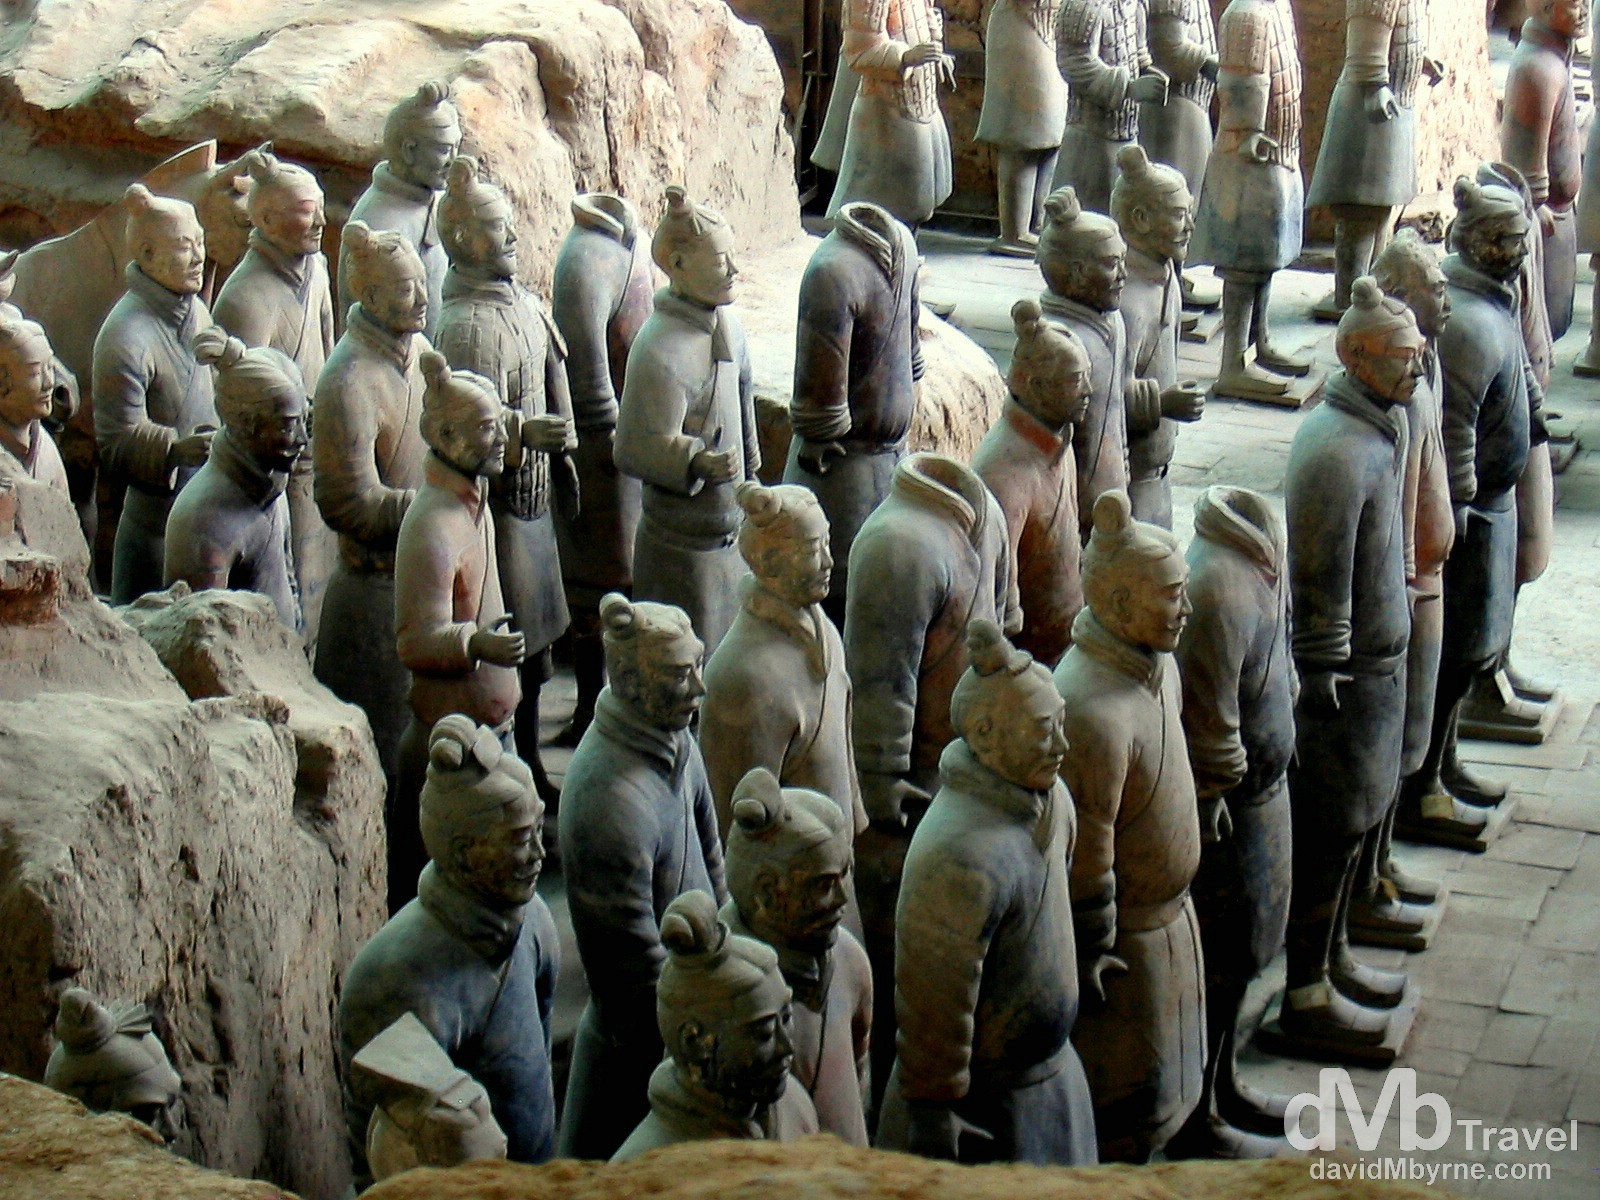 Vault 1 of the Terracotta Army on the outskirts of Xi'an, Shaanxi Province, China. September 30th, 2004.